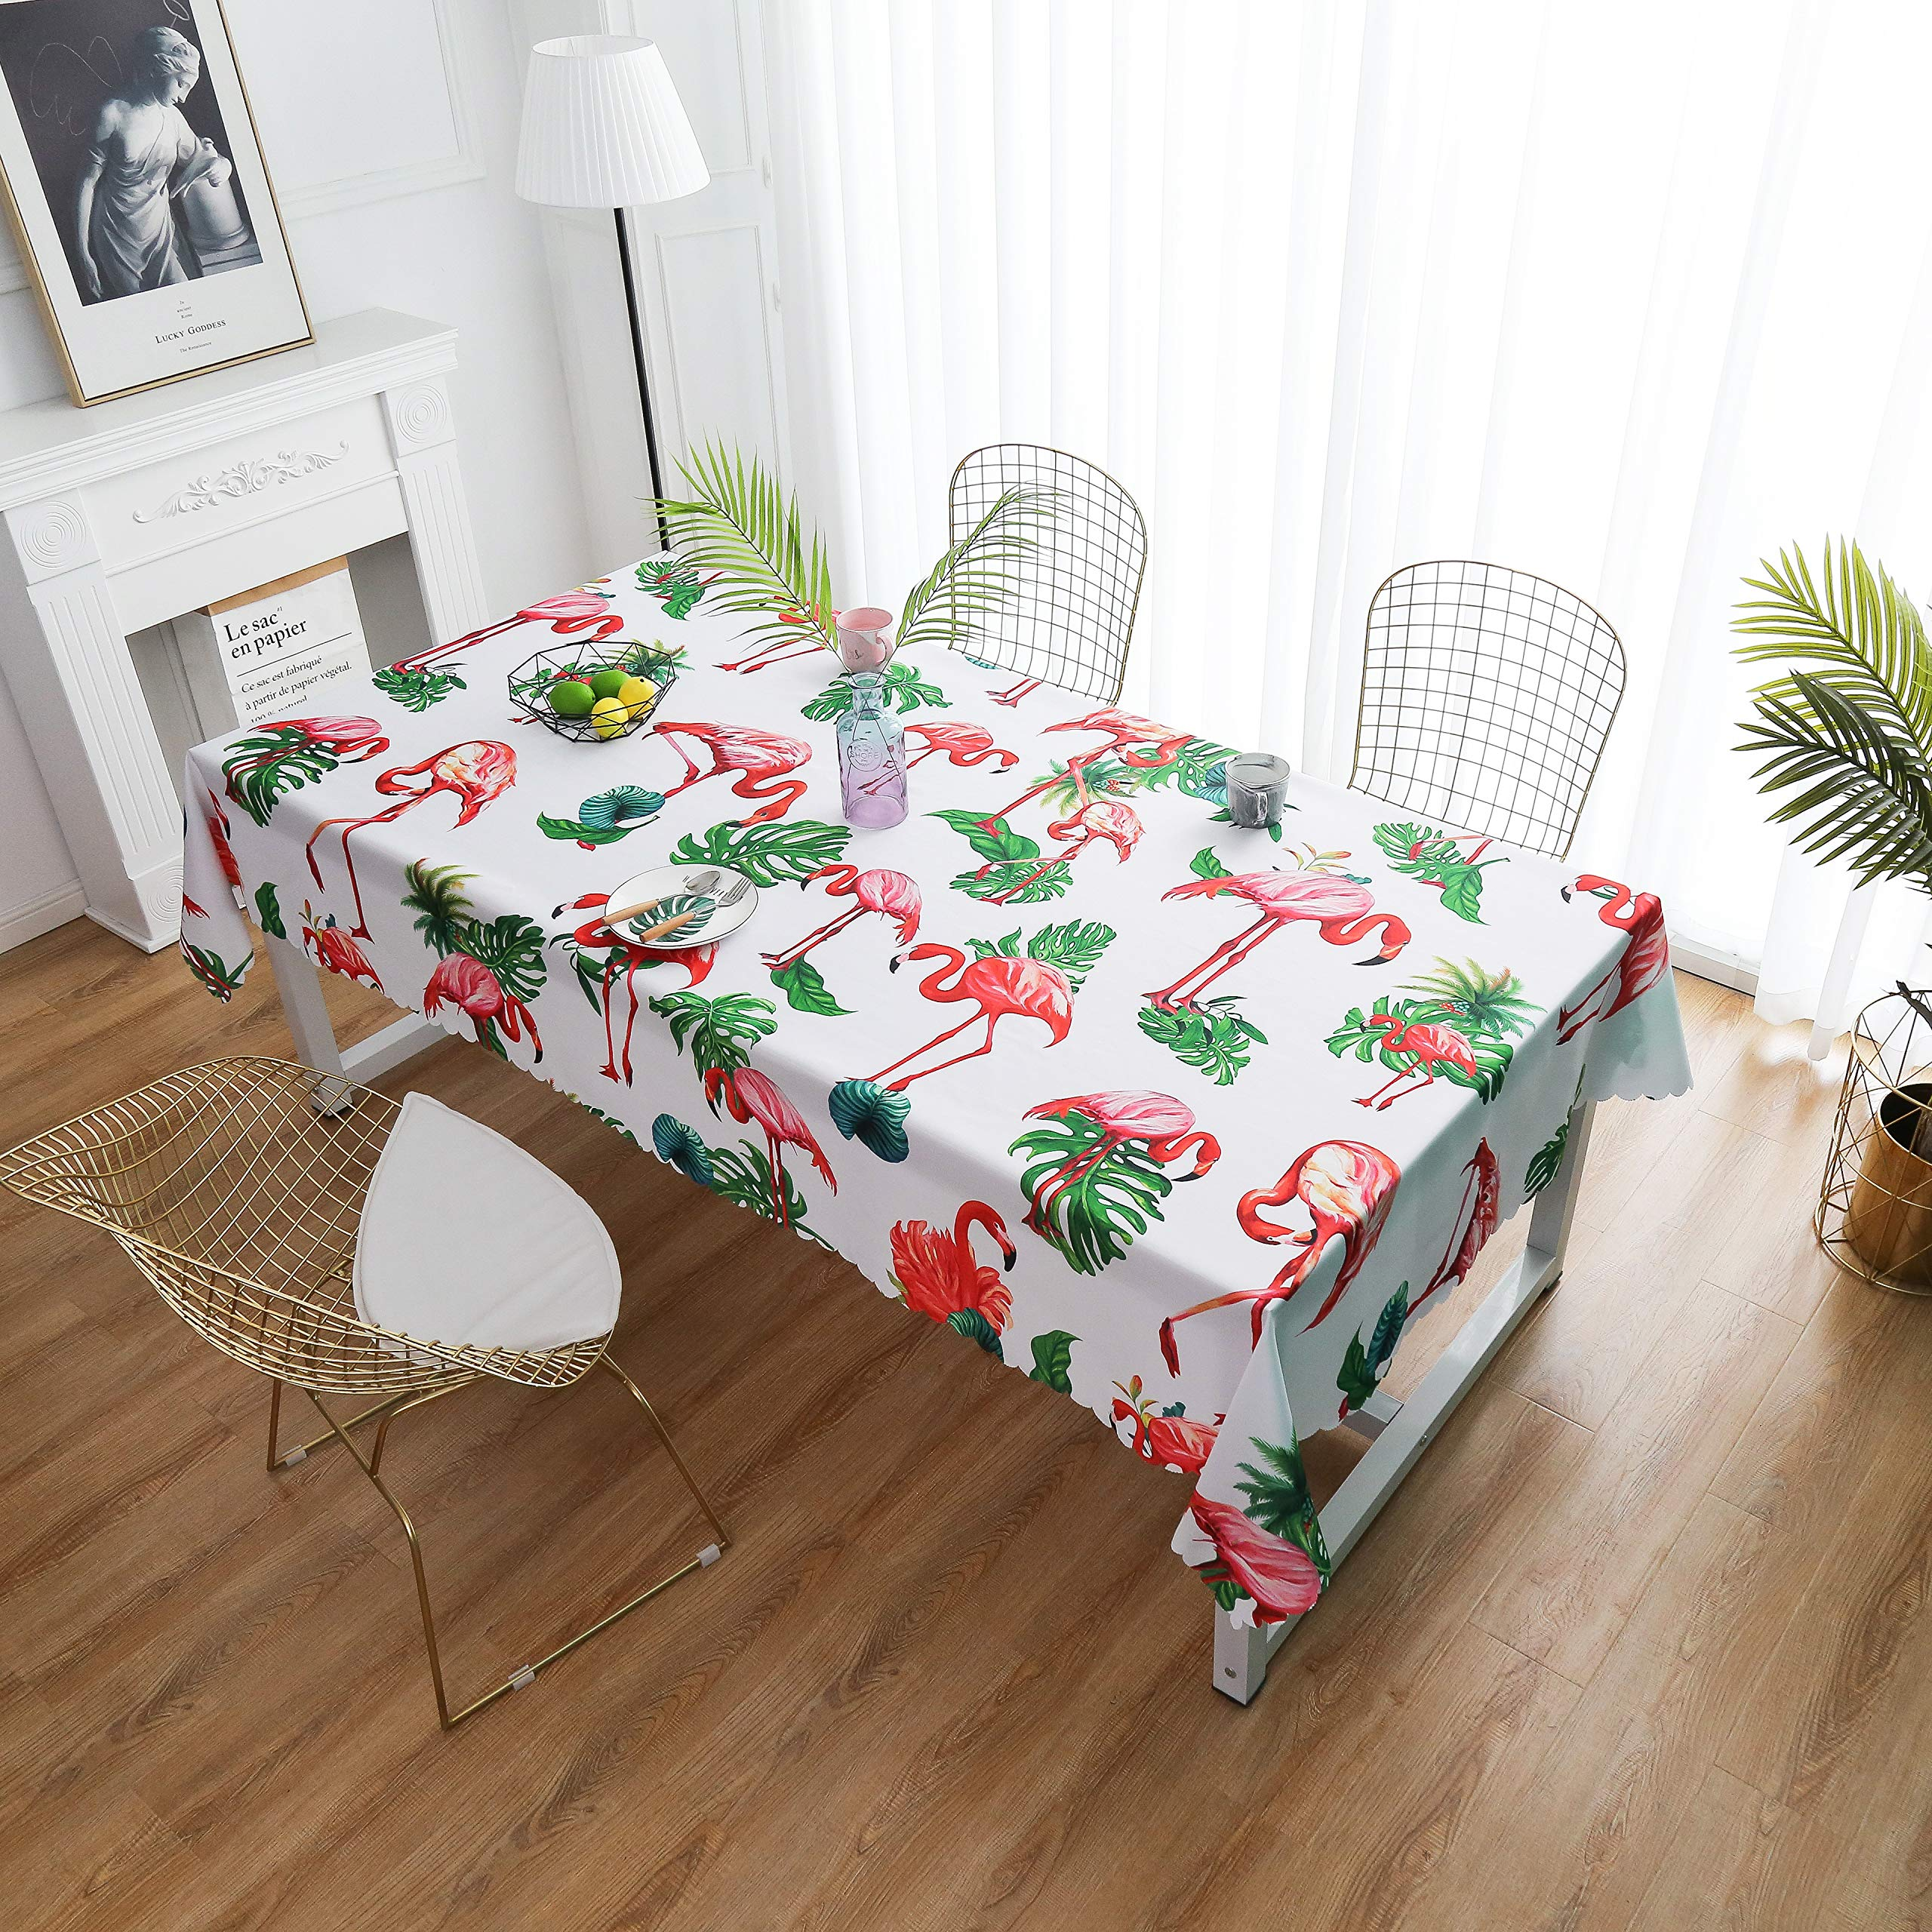 """iLiveX Tablecloth, Original Design Hand Drawing Art Print Table Cloth, Water-Proof Rectangle Table Cover, Kitchen Dining Indoor Outdoor Buffet Tabletop Decoration, 60""""x84"""" (Flamingos)"""